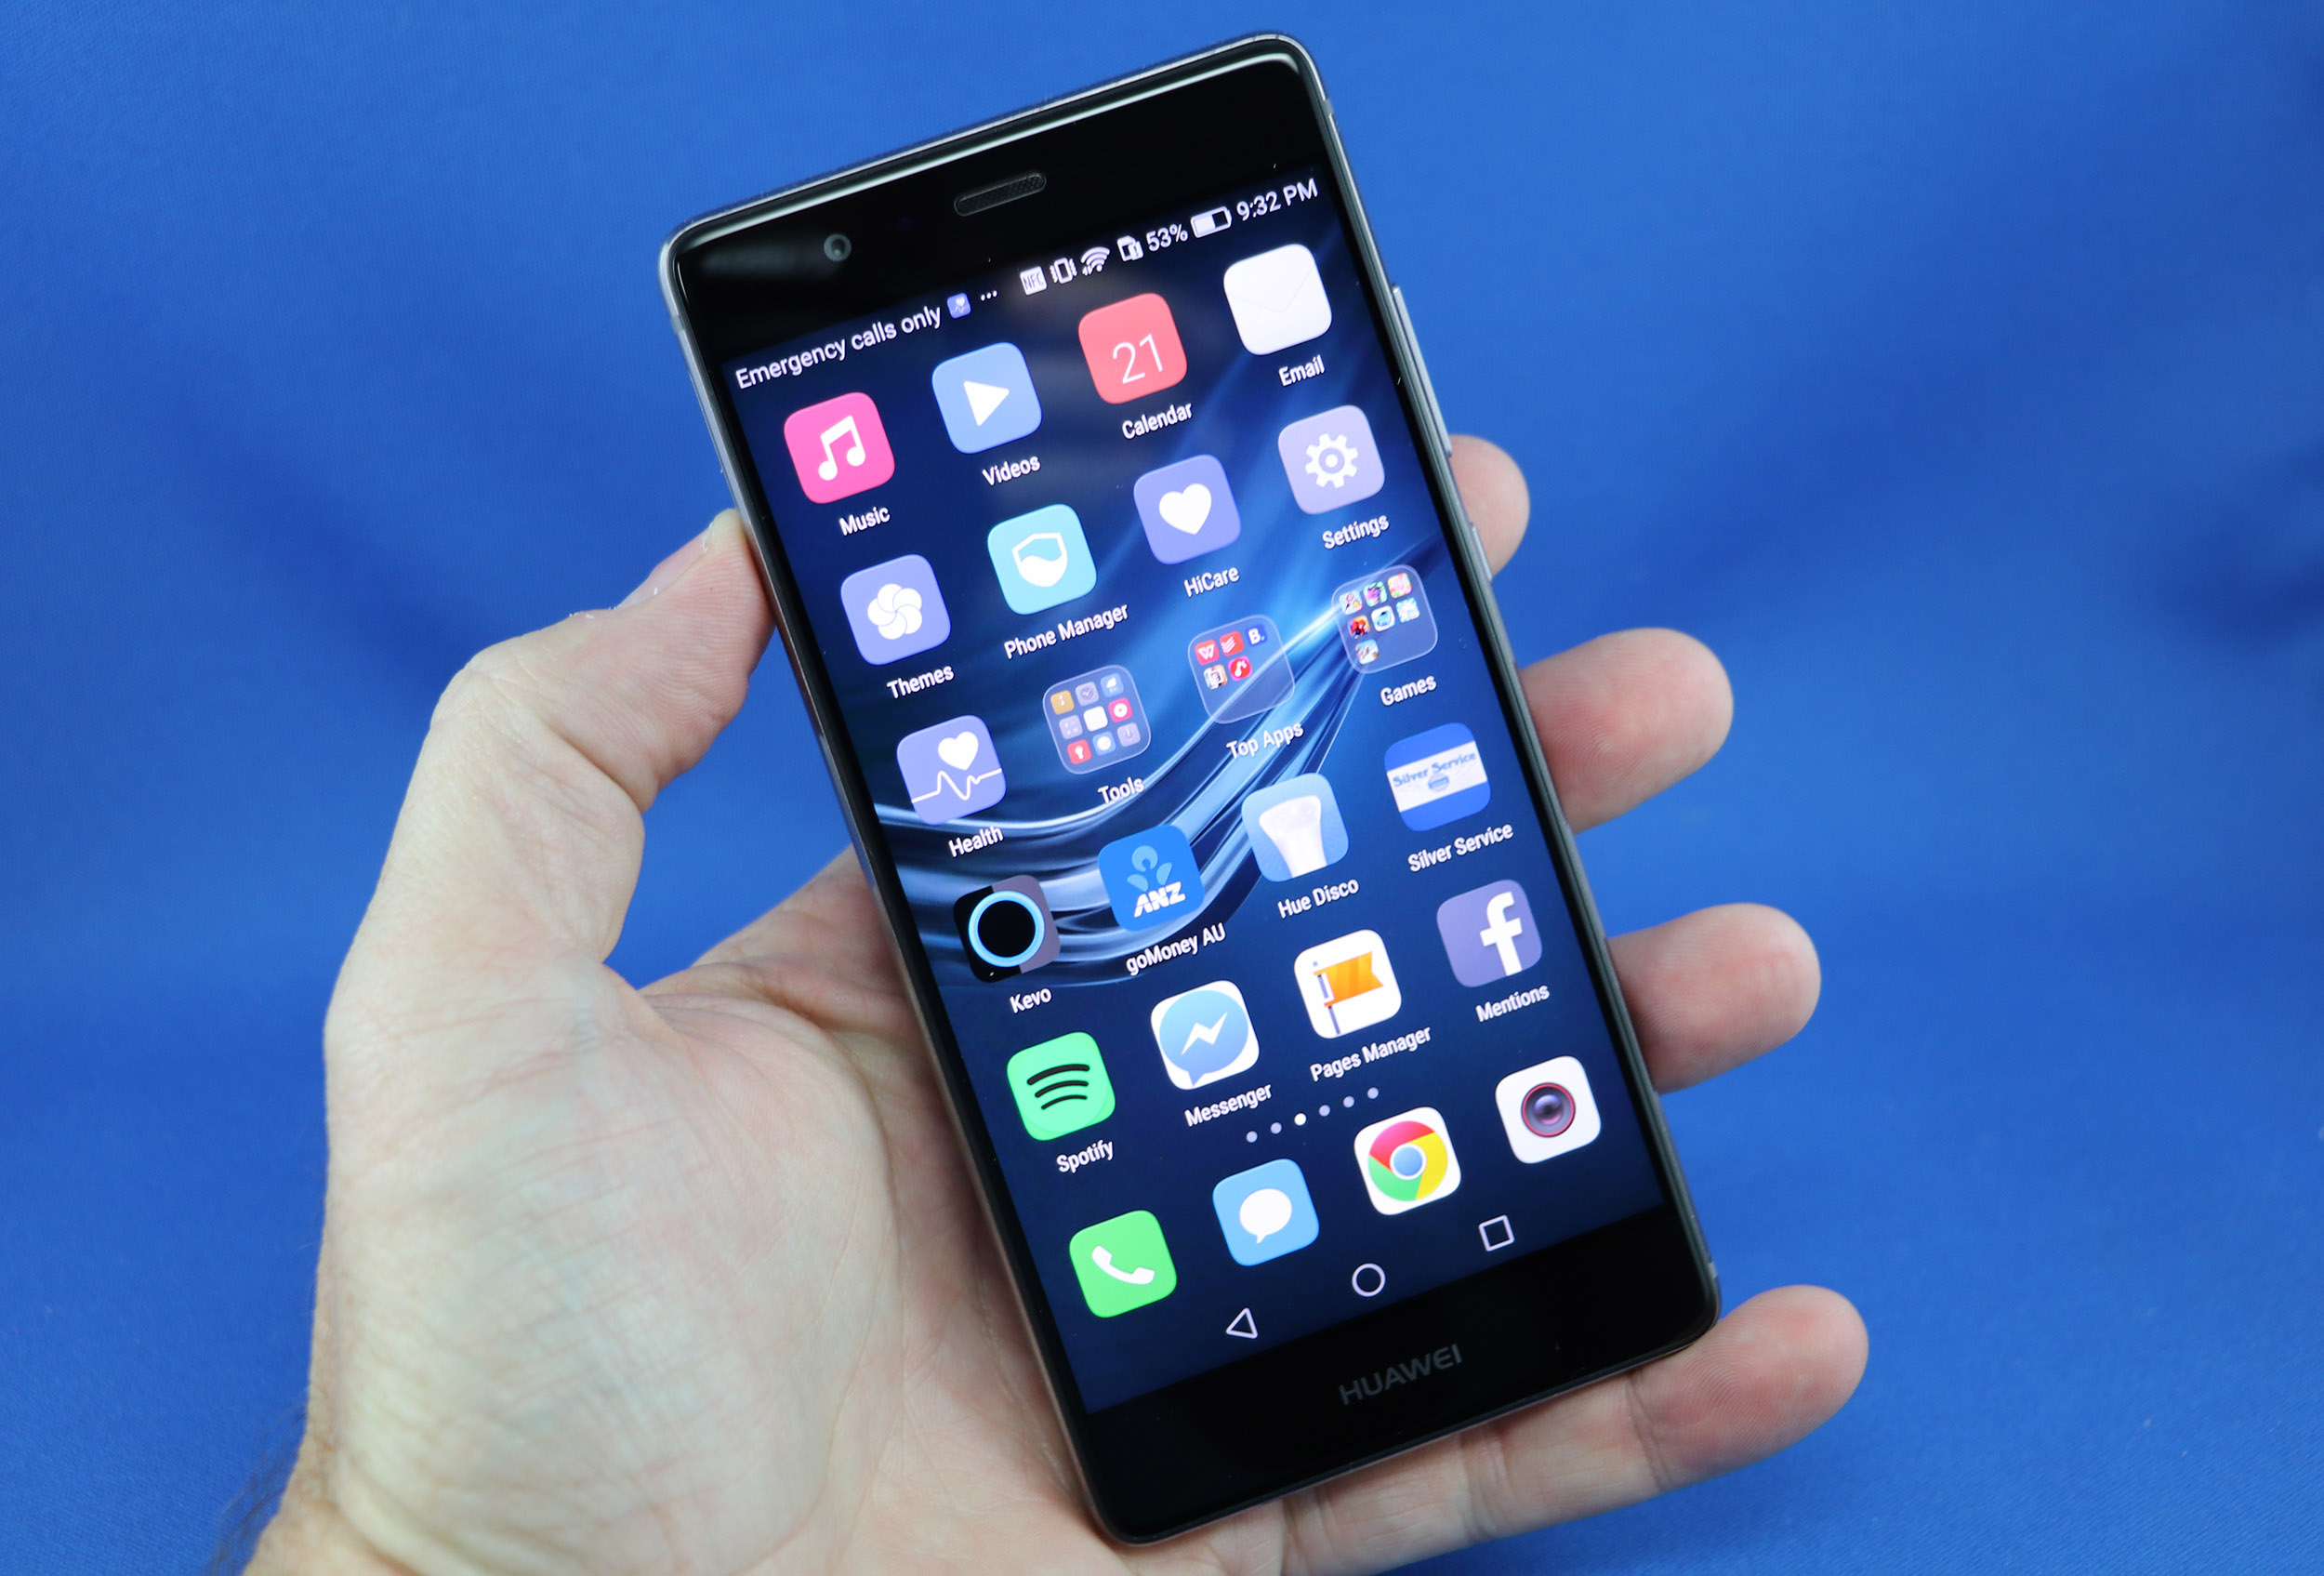 Huawei P9 Australian review - This is a spectacular phone » EFTM